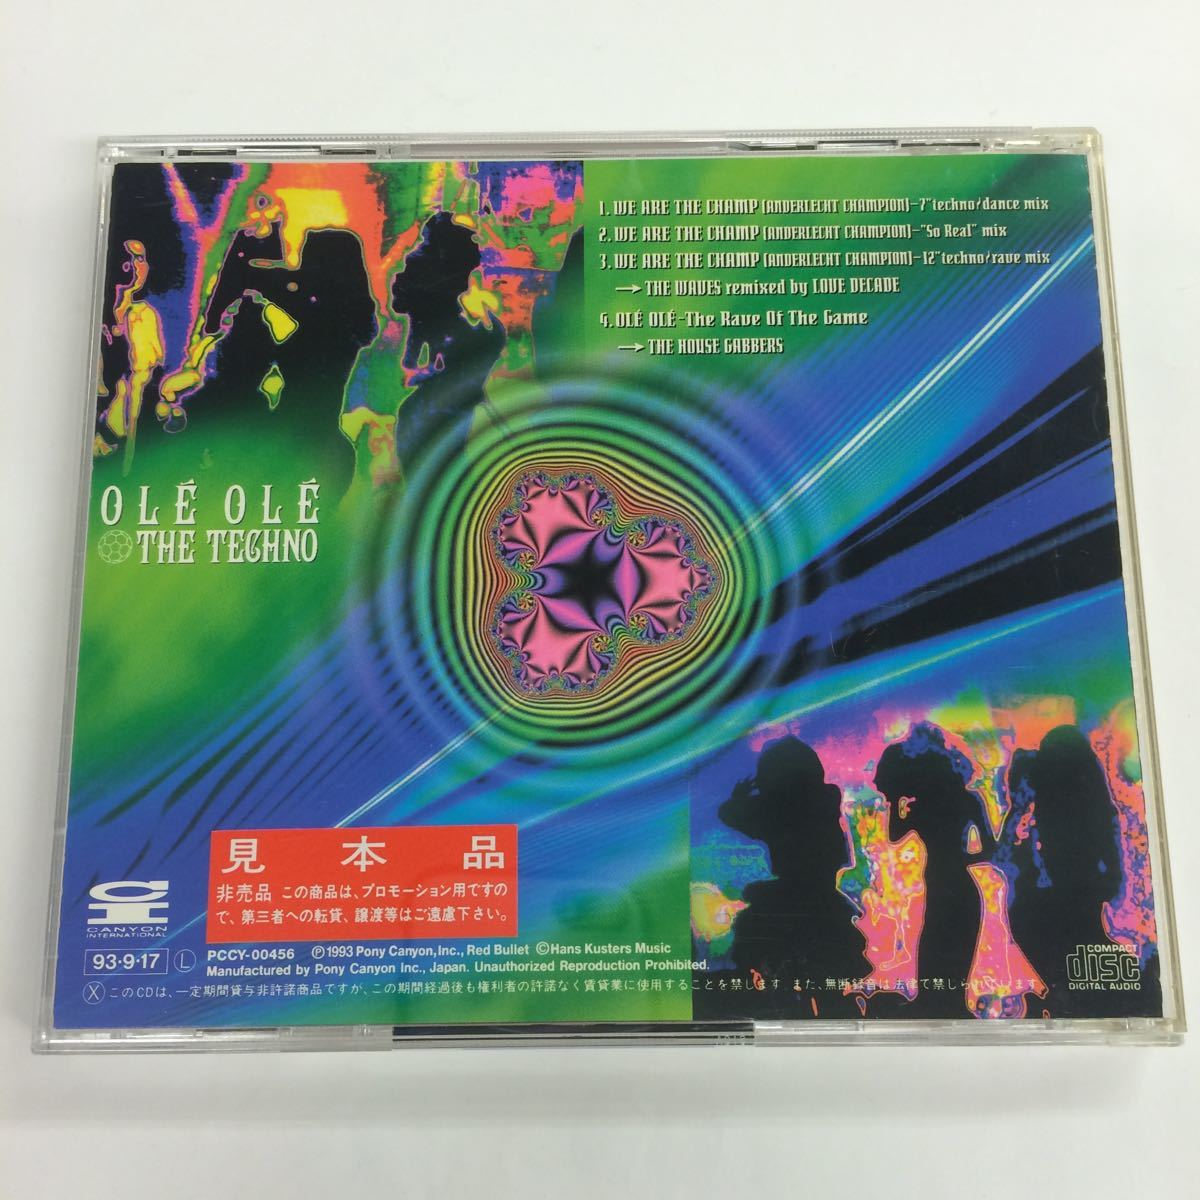 #LOVE DECADE, THE HOUSE GABBERS/オレ!オレ!ザ テクノ, OLE OLE-The Rave Of The Game/WE ARE THE CHAMP/帯付き CD_画像2